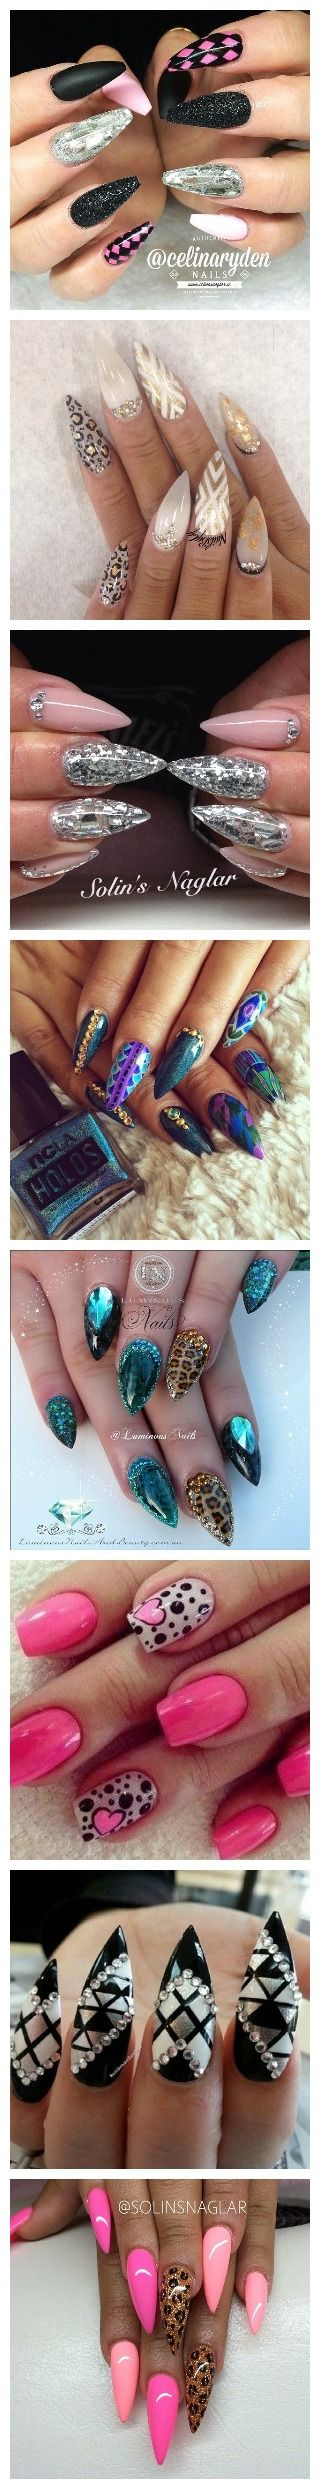 Nail Art Ideas and Designs | Nail Art, Styles, Polish | Pinterest ...